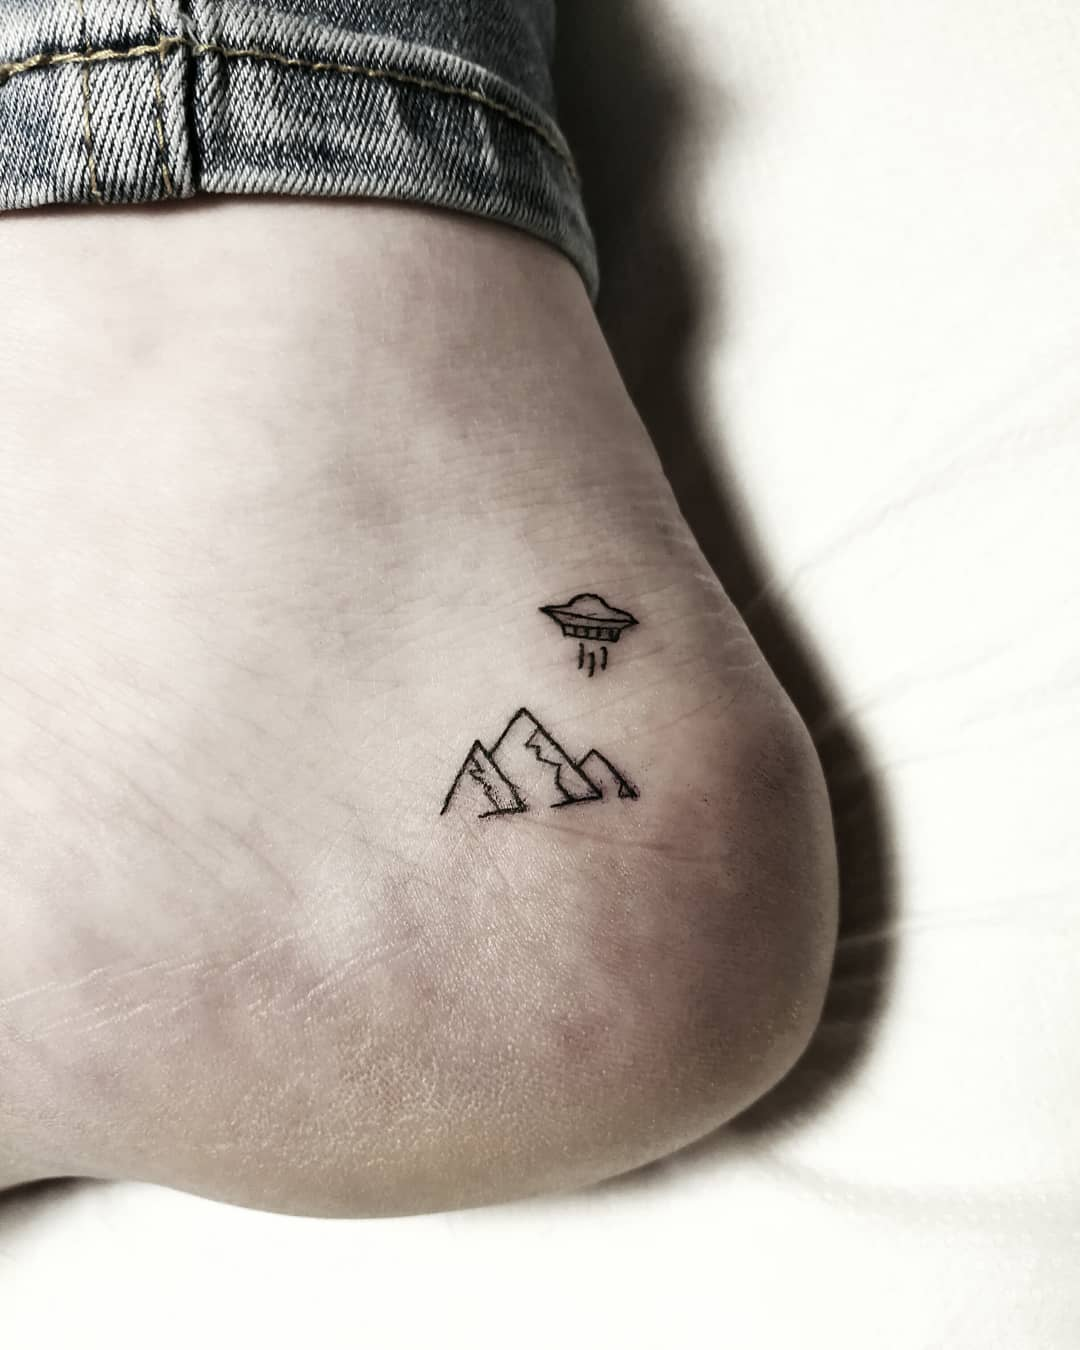 small-tattoos-designs-types